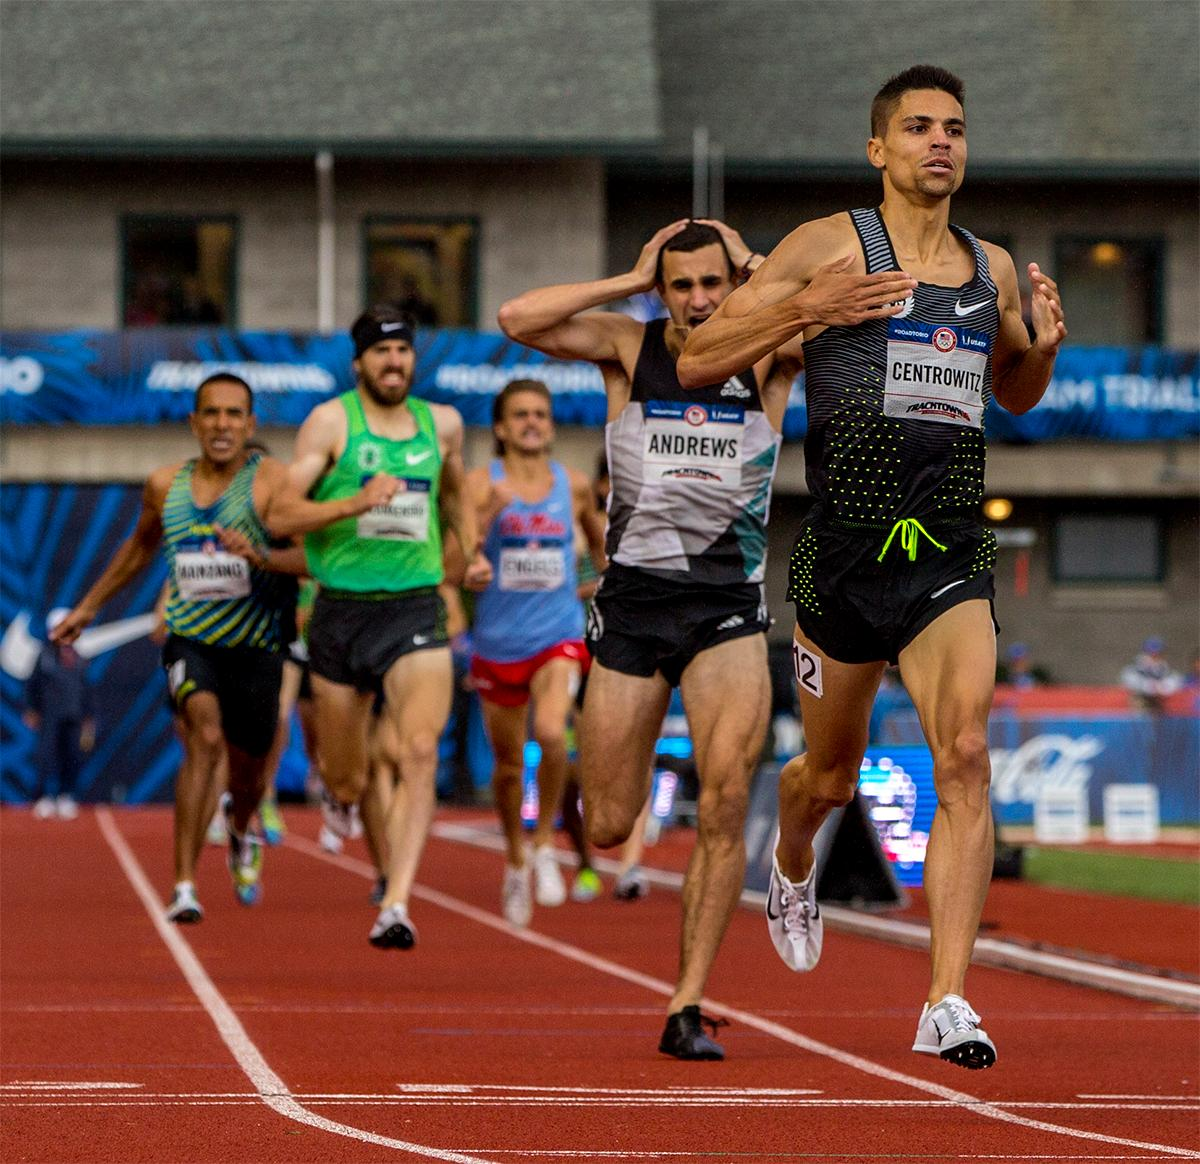 Nike Oregon Project's Matthew Centrowitz hits the line in the 1,500 meters and qualifies for Rio. Centrowitz won the race in 3:34.09. Photo by August Frank, Oregon News Lab